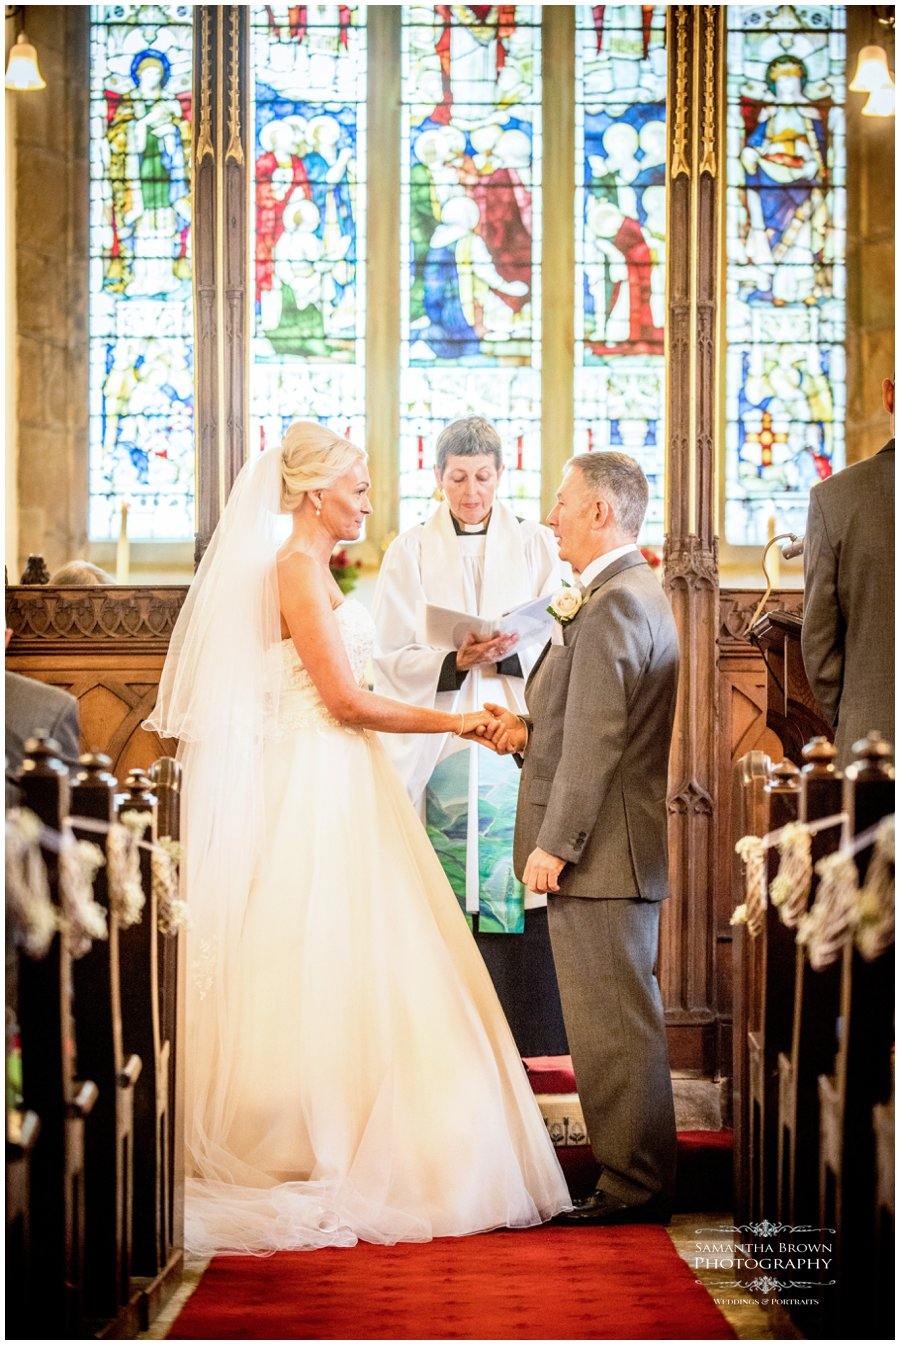 a couple getting married at Lathom Chapel